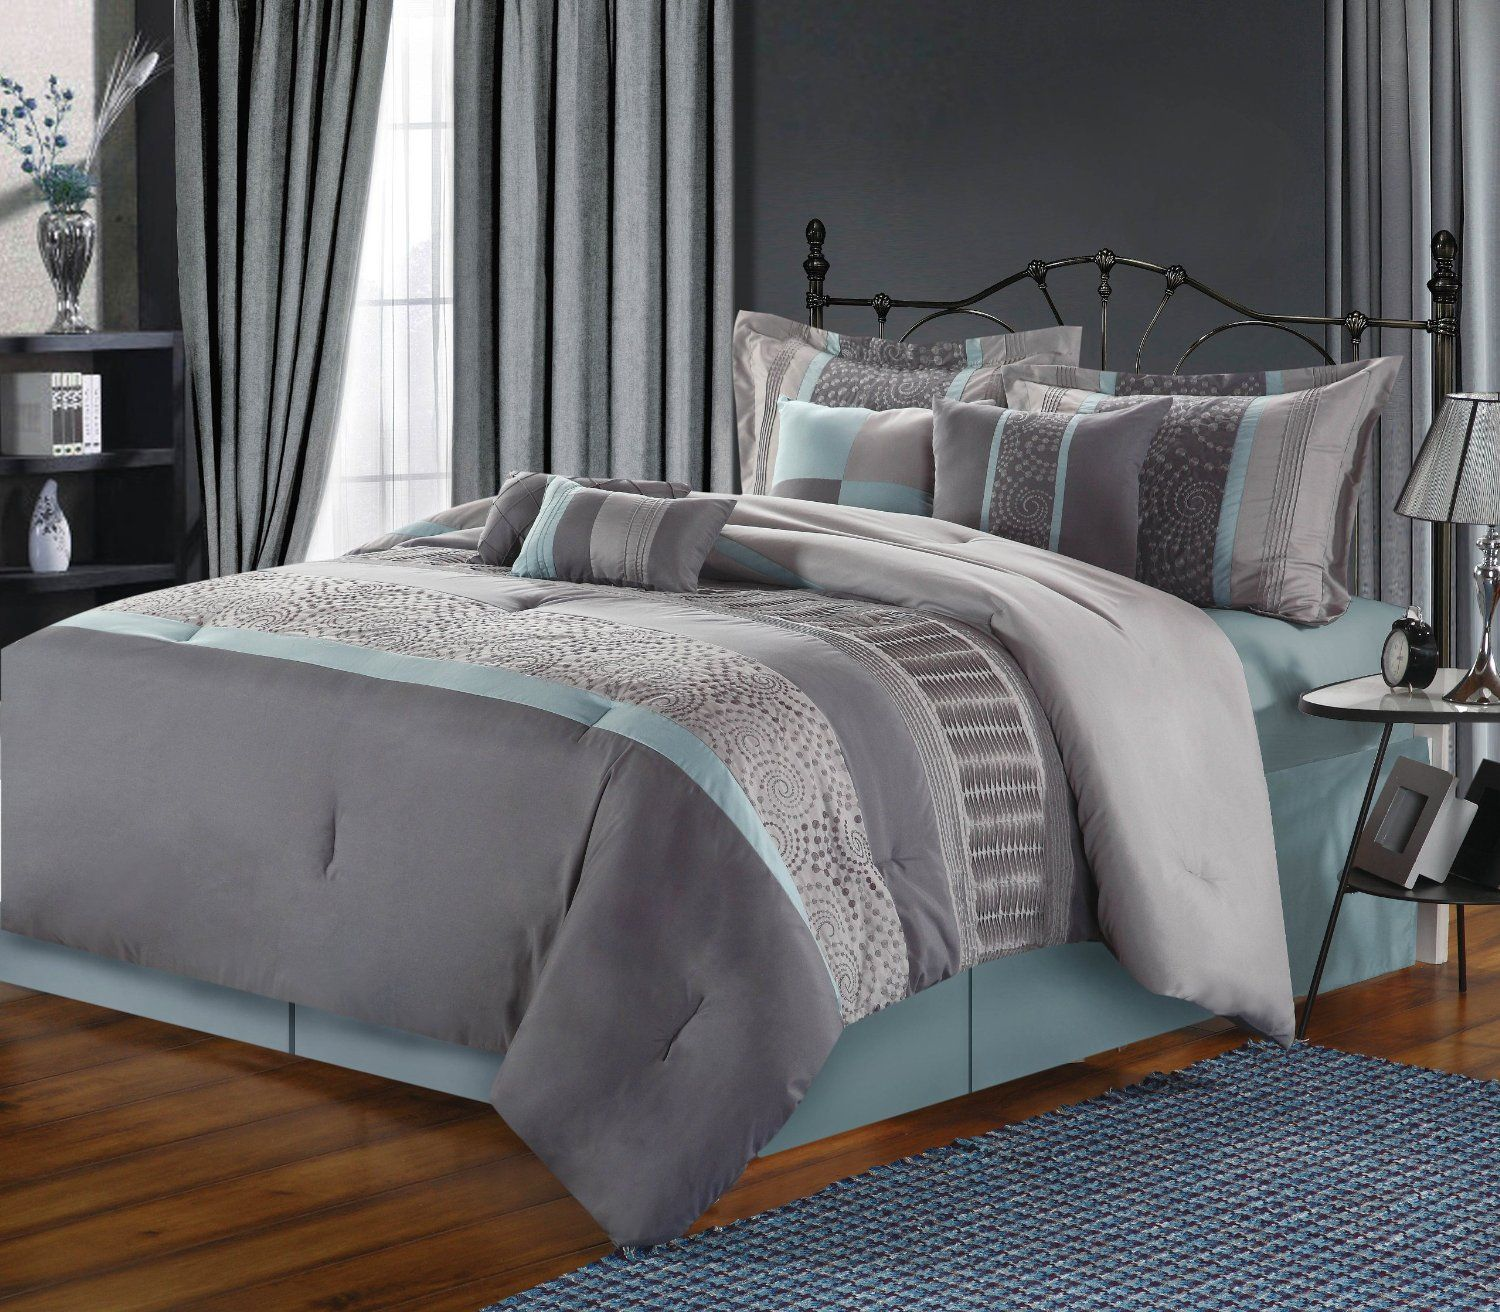 brown bedroom grey your with sets croscill elegant to dark of zarina flooring collection laminate headboard on having comforter leather bed beautify wonderful